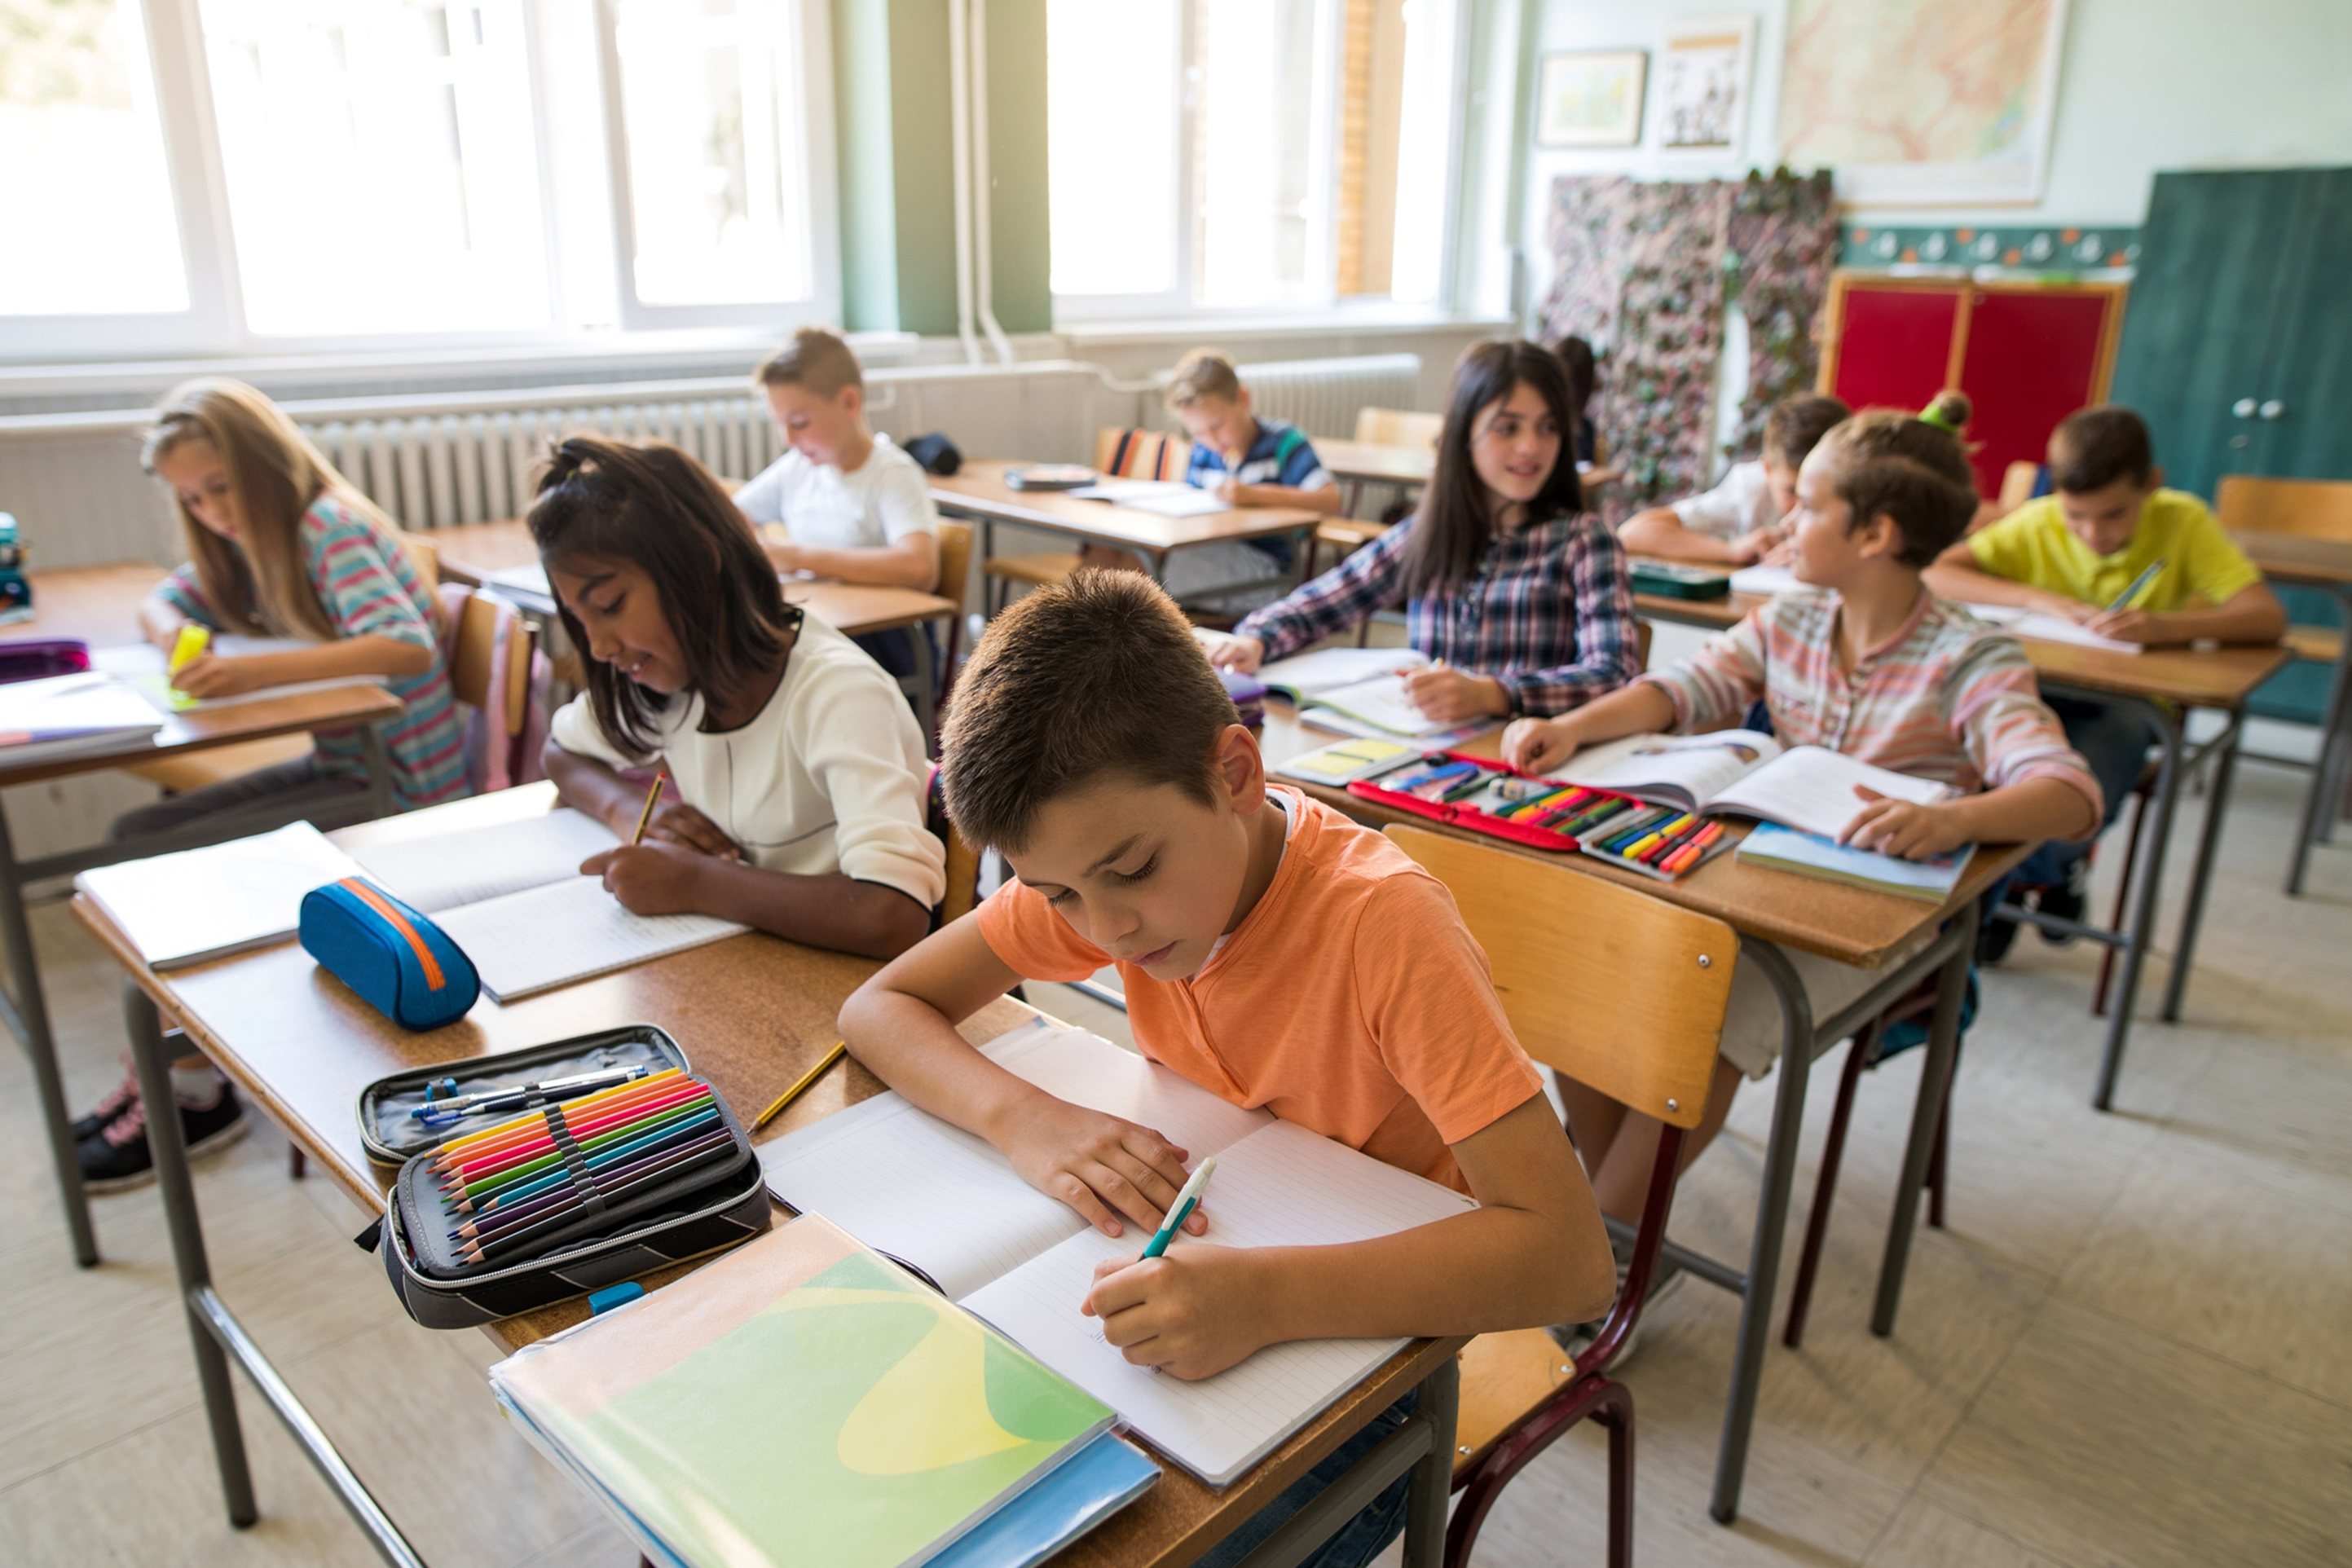 Adhd Diagnoses Why Youngest Kids In >> Health Fit The Youngest Children In Class More Likely To Be